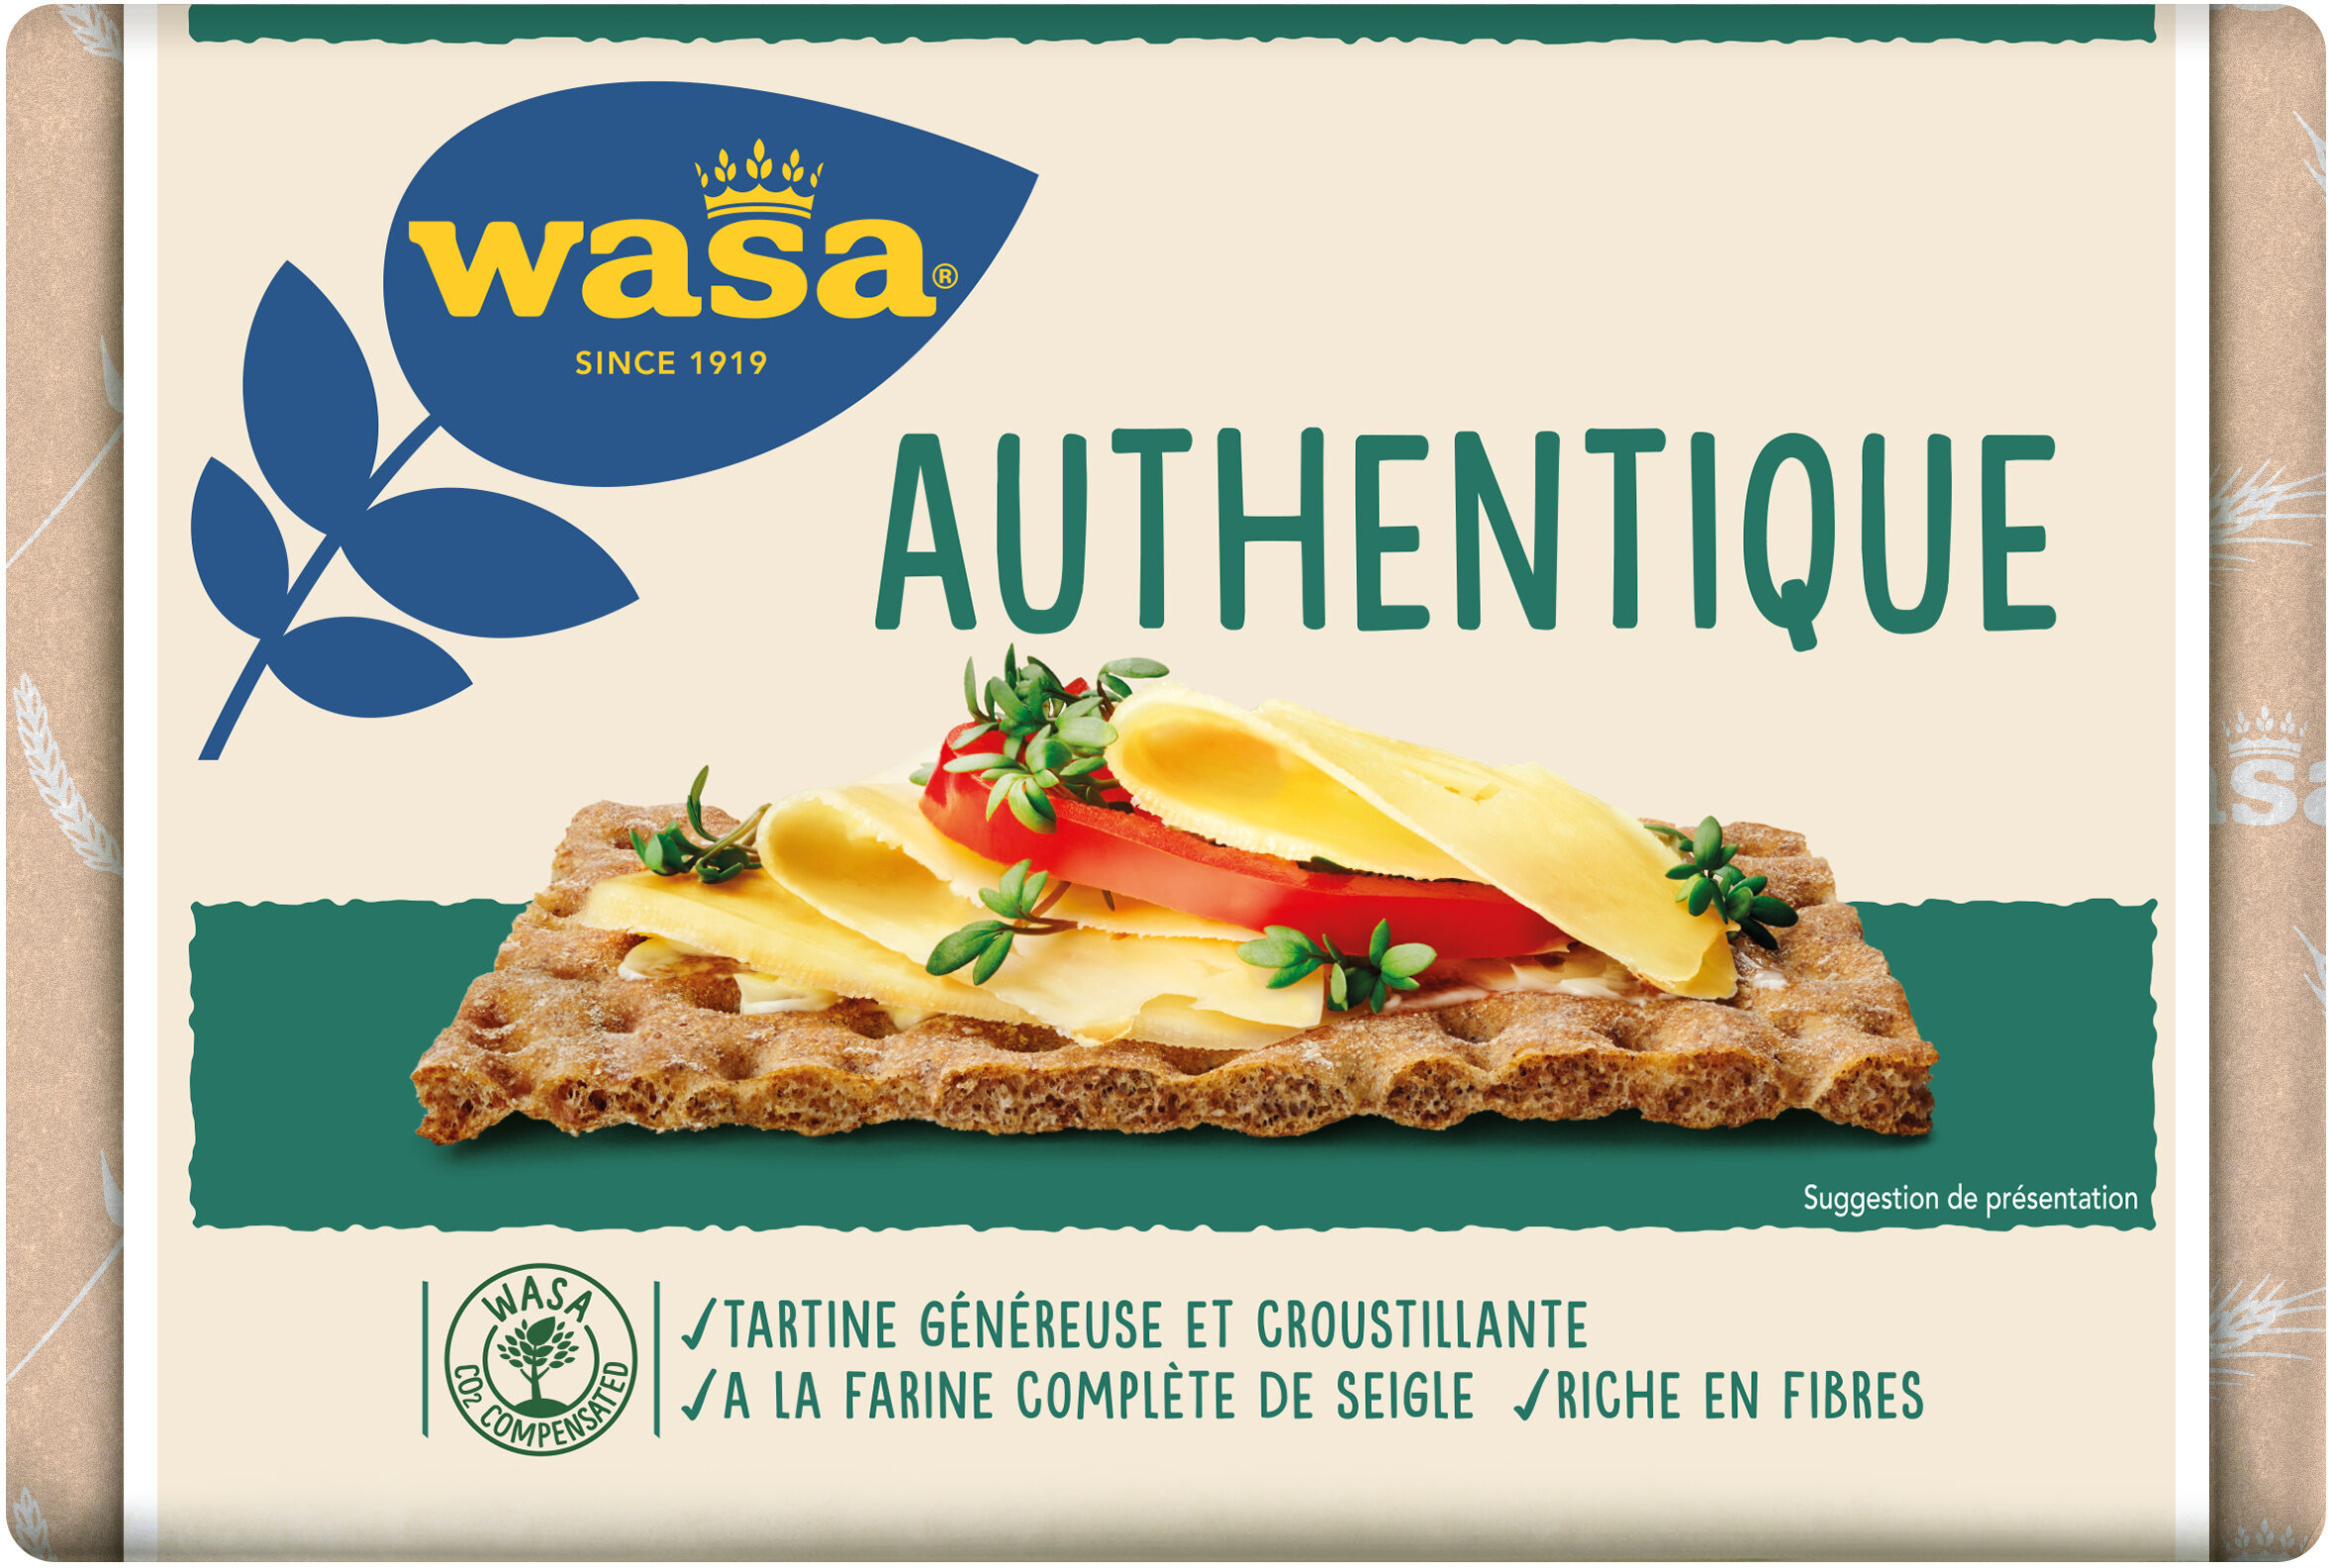 Wasa tartine croustillante authentique - Producto - fr